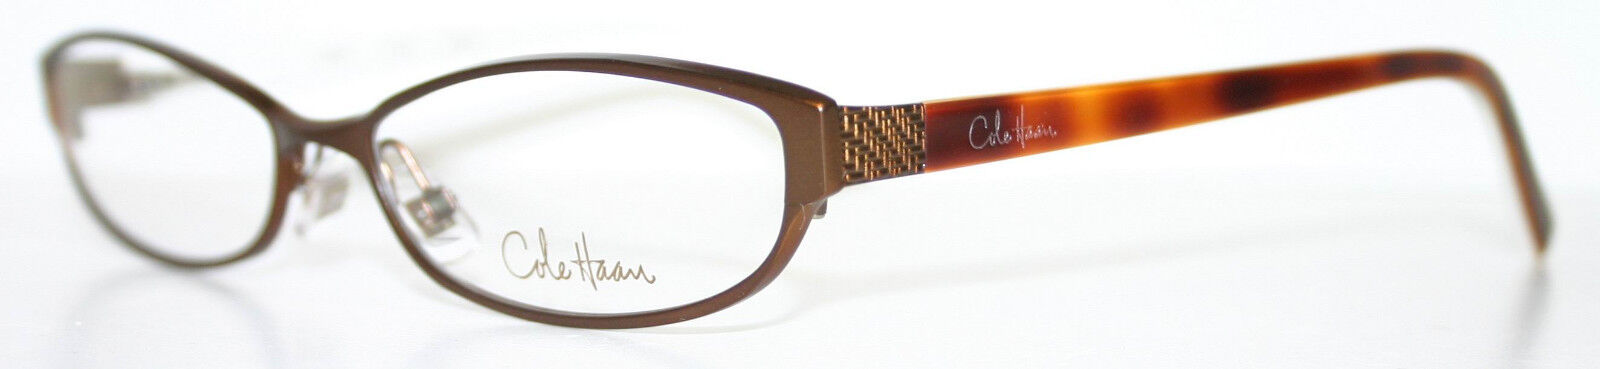 COLE HAAN CH 920 BROWN New Designer Optical Eyeglass Frame Italy ...